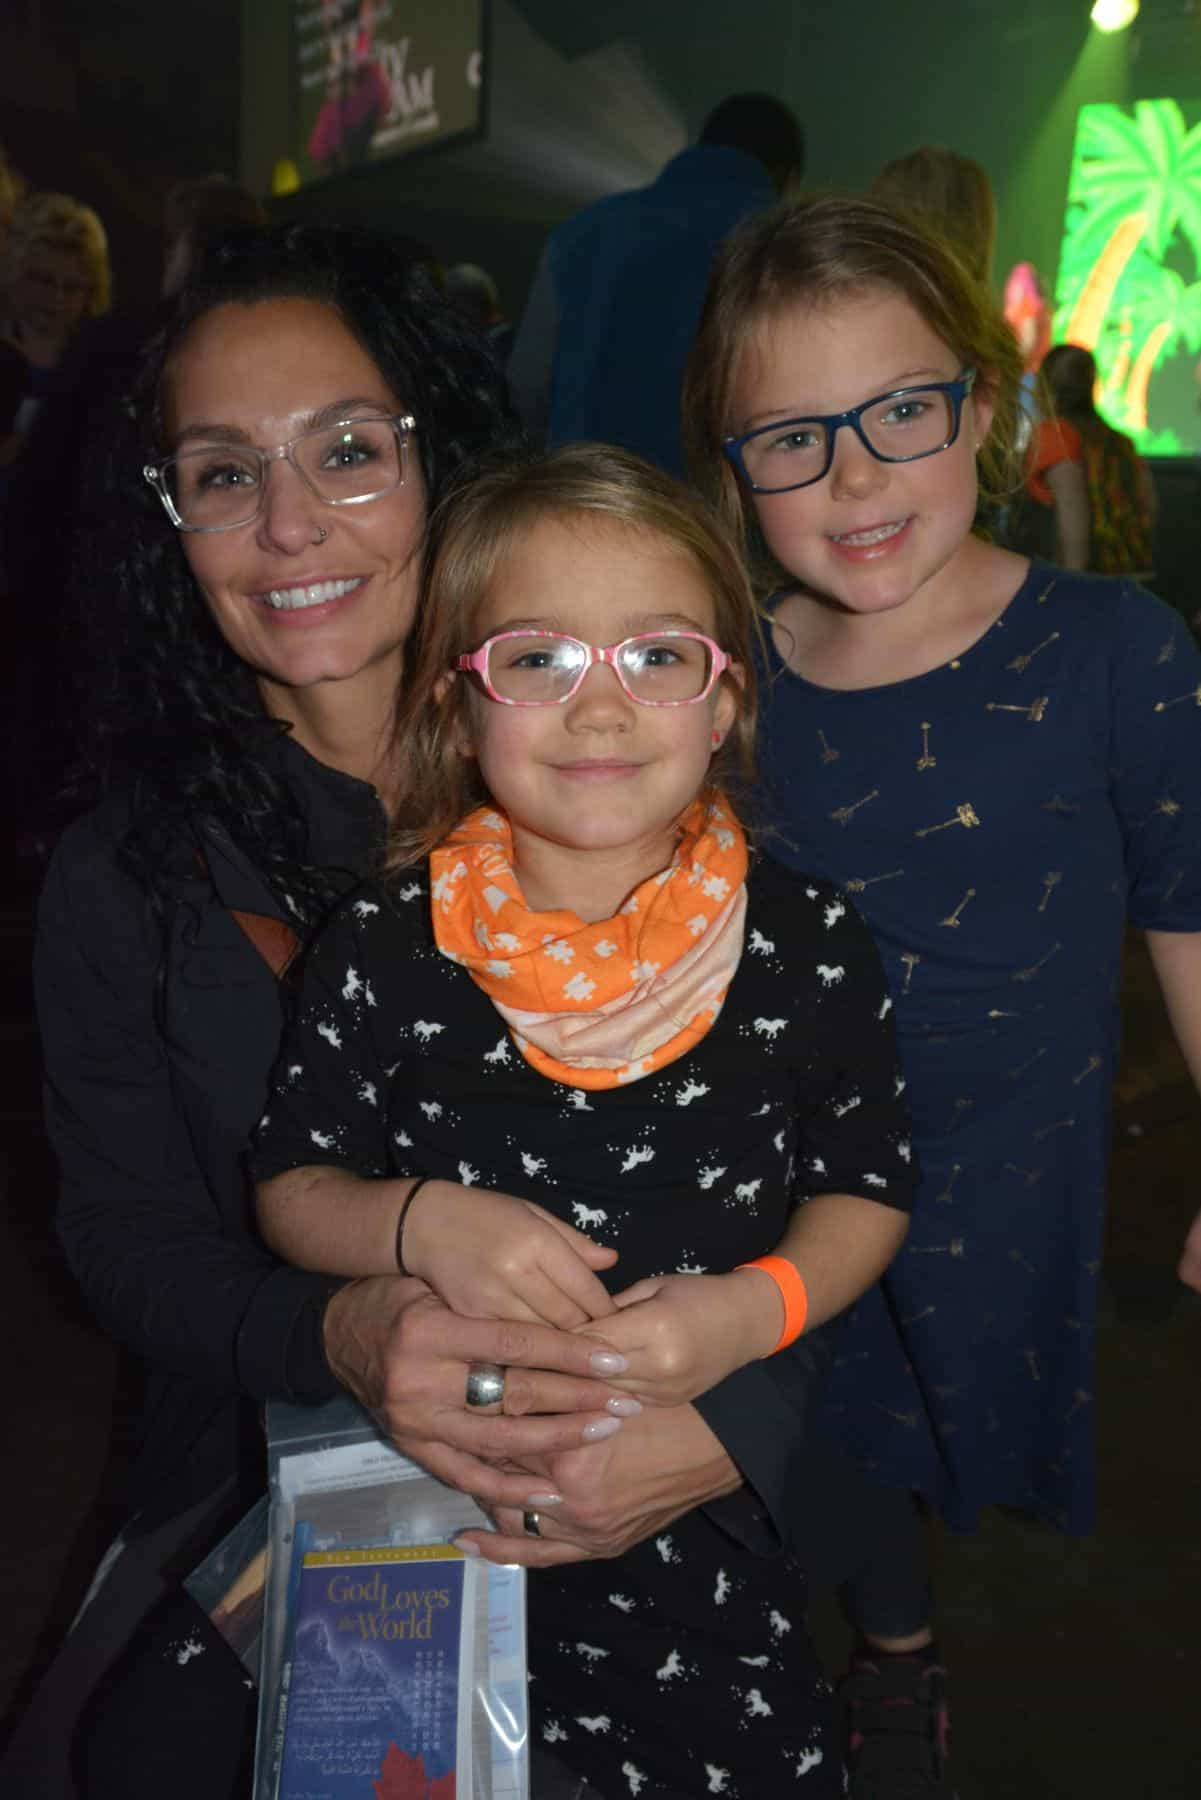 Alicia with her daughter, Josie, who decided to accept Jesus at the KidzFest event at the Avalon Celebration of Hope.